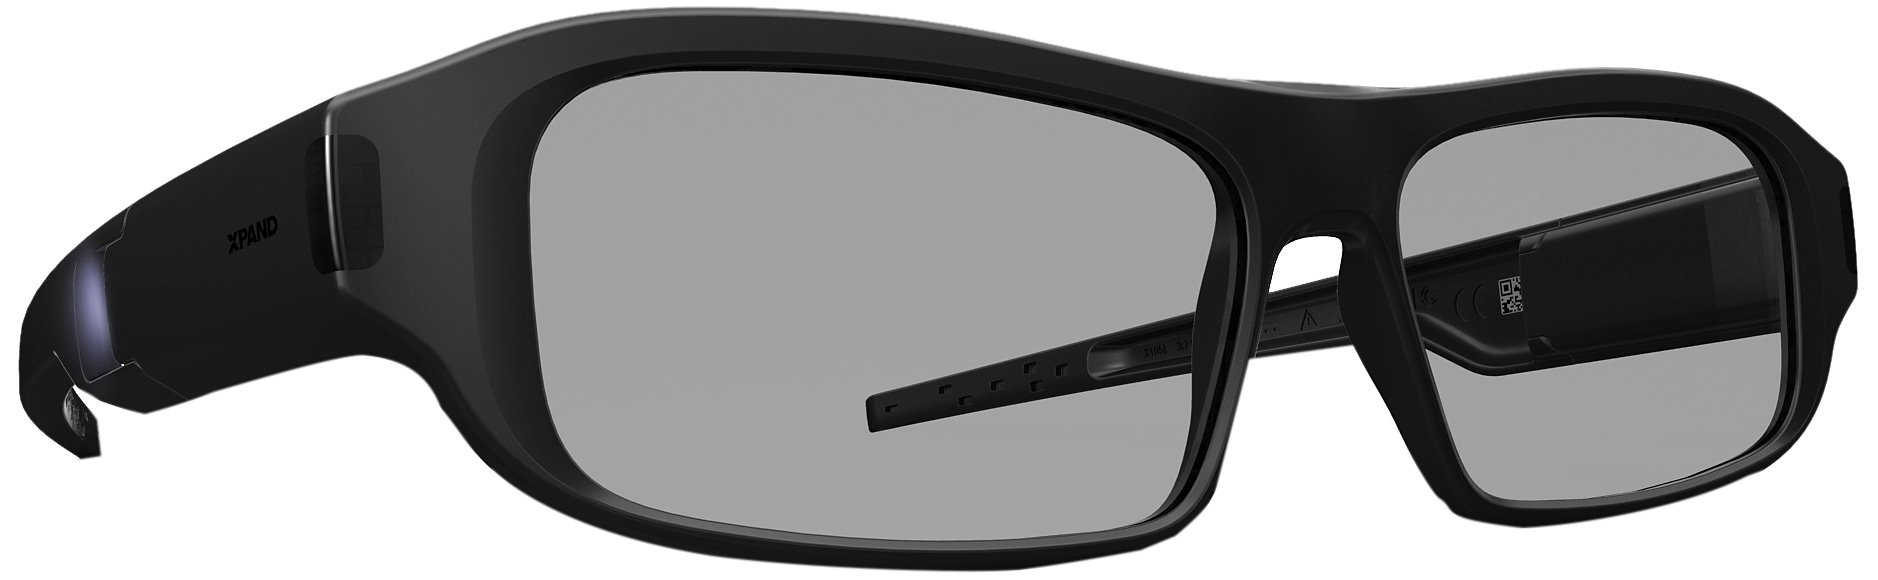 XPAND X105-RF-X1 Rechargeable 3D RF/Bluetooth Glasses by Xpand